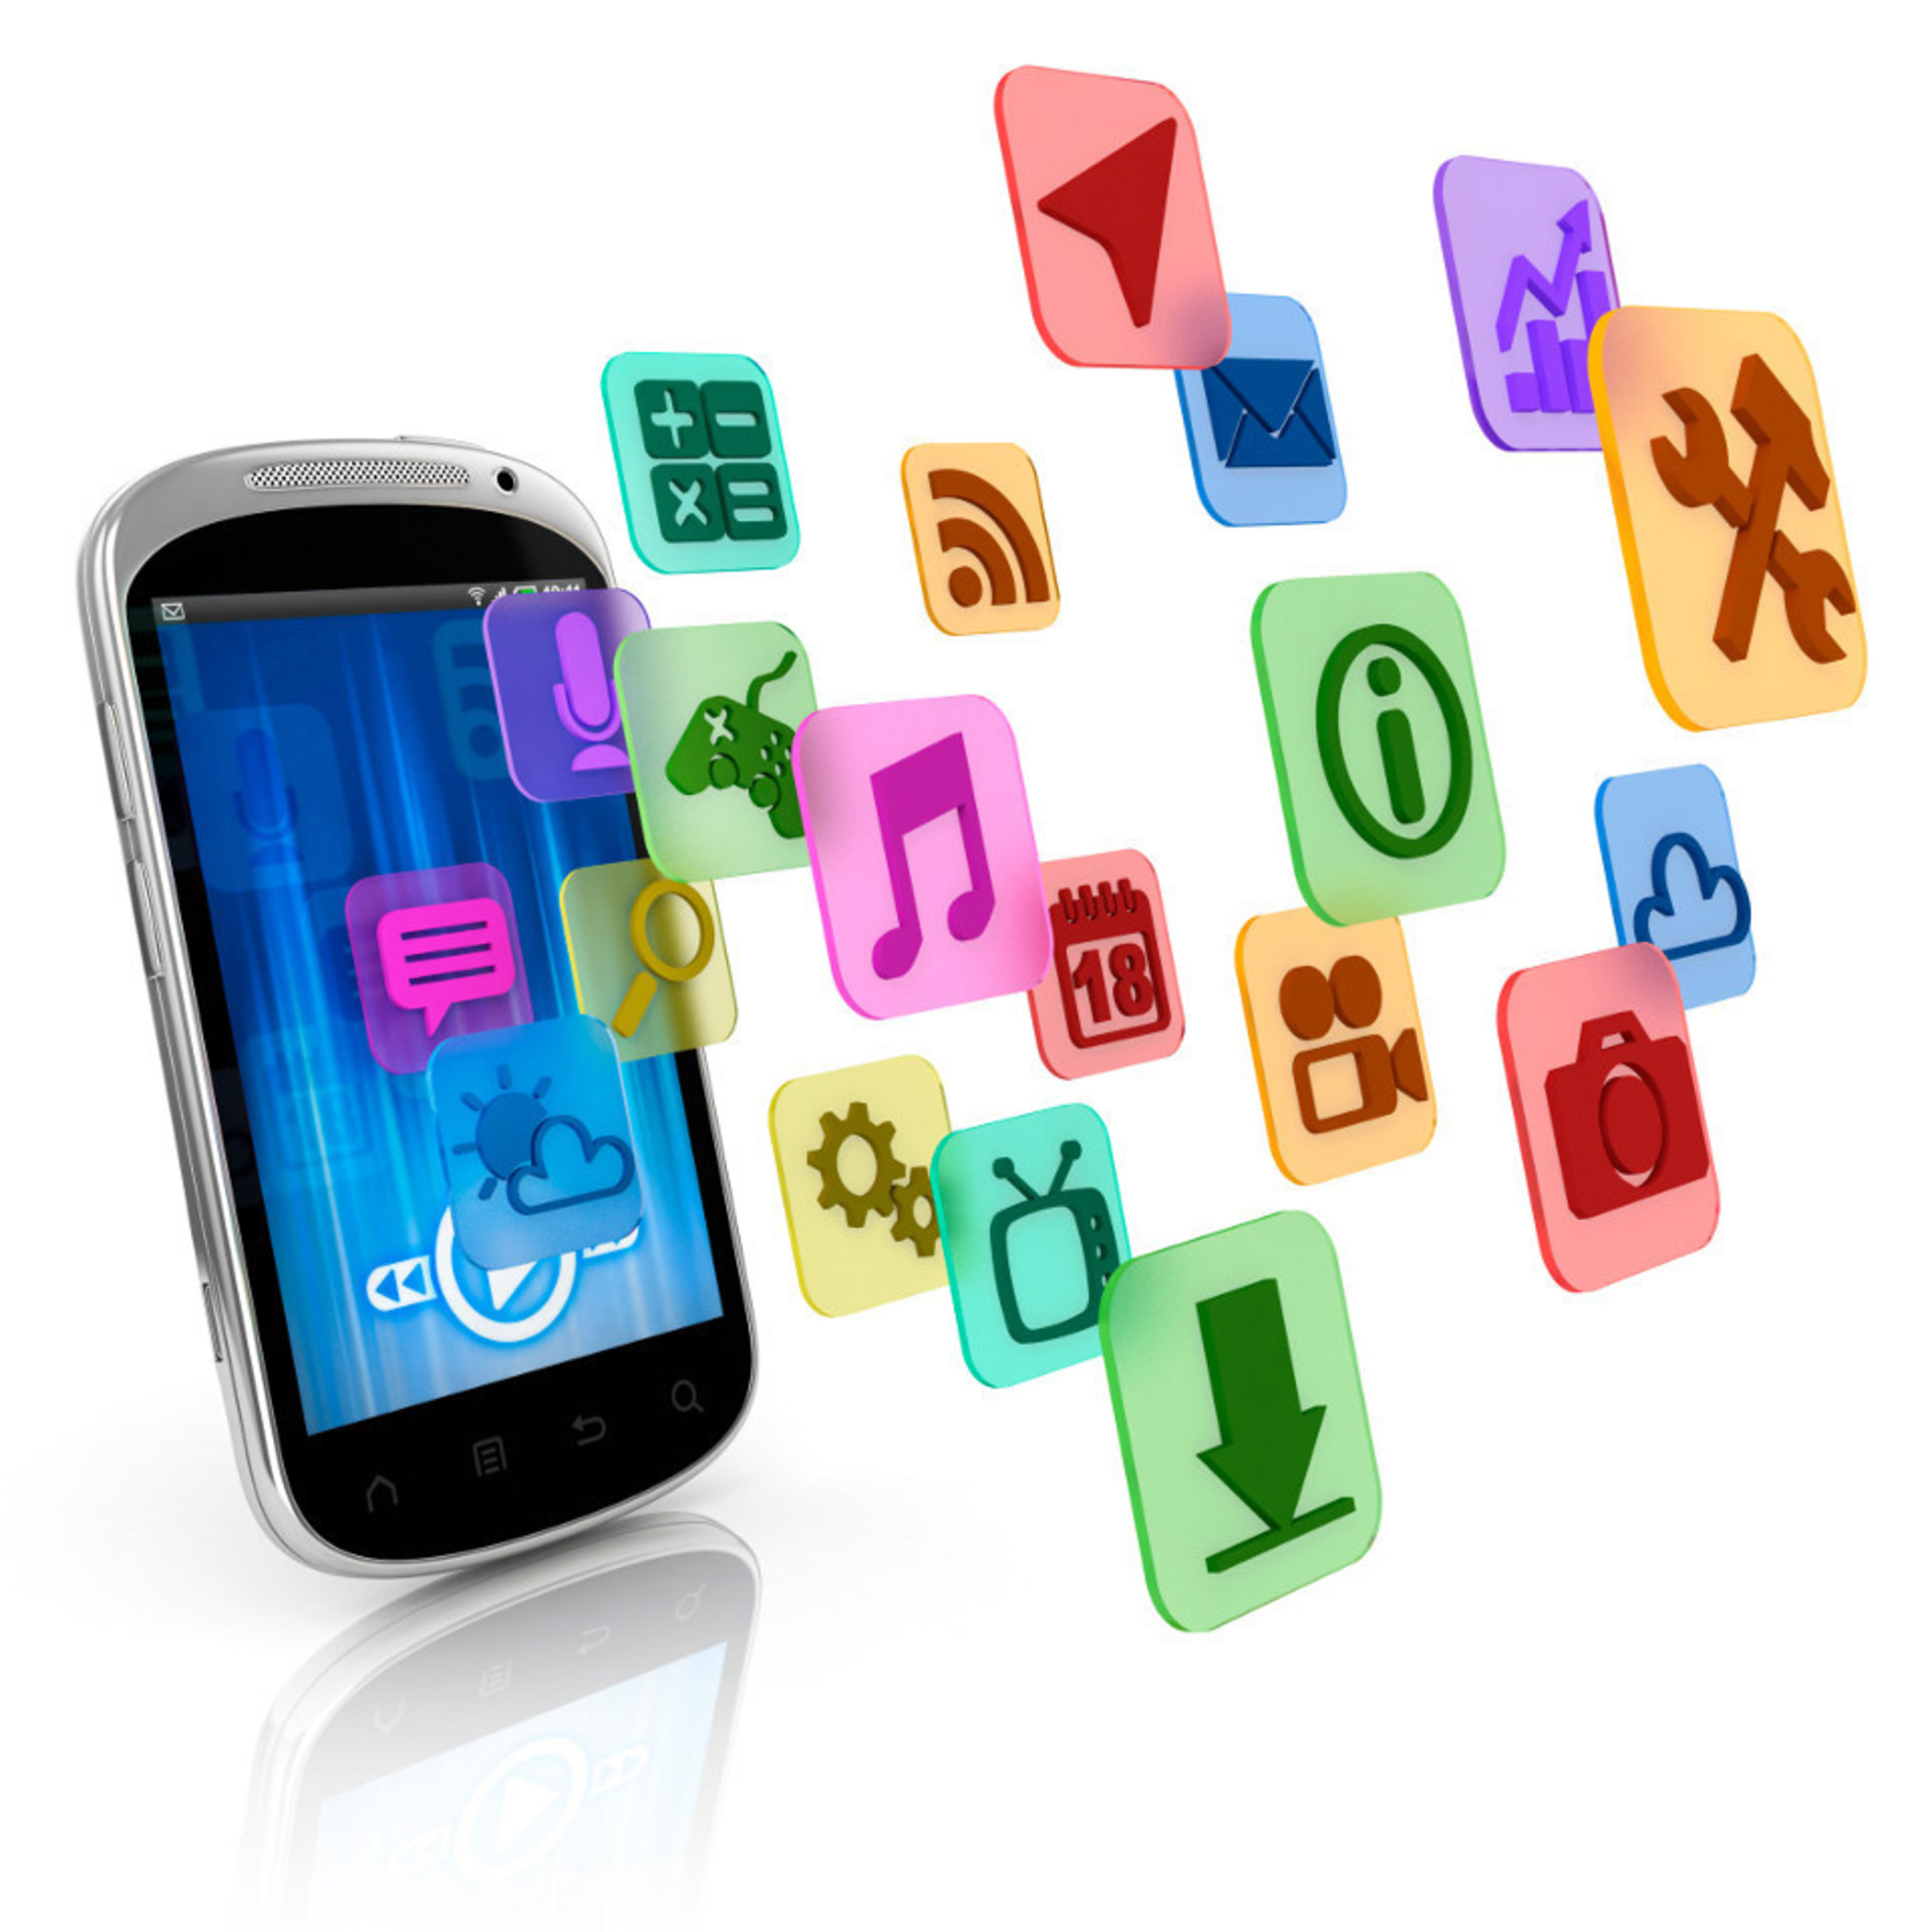 Ultra Broadband Services and Enterprise Mobility Apps Lead the Way